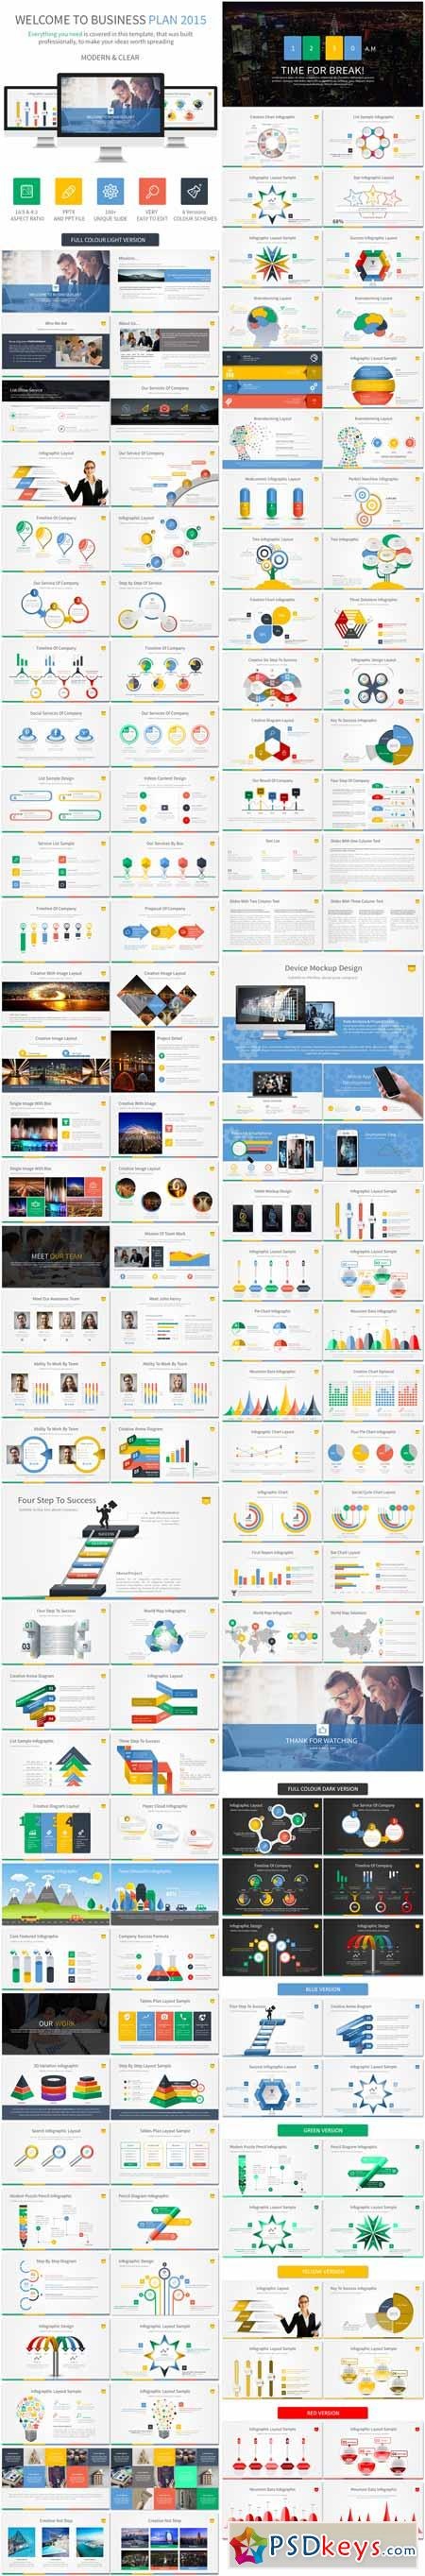 Business plan 2015 powerpoint template 11318924 free download business plan 2015 powerpoint template 11318924 friedricerecipe Image collections